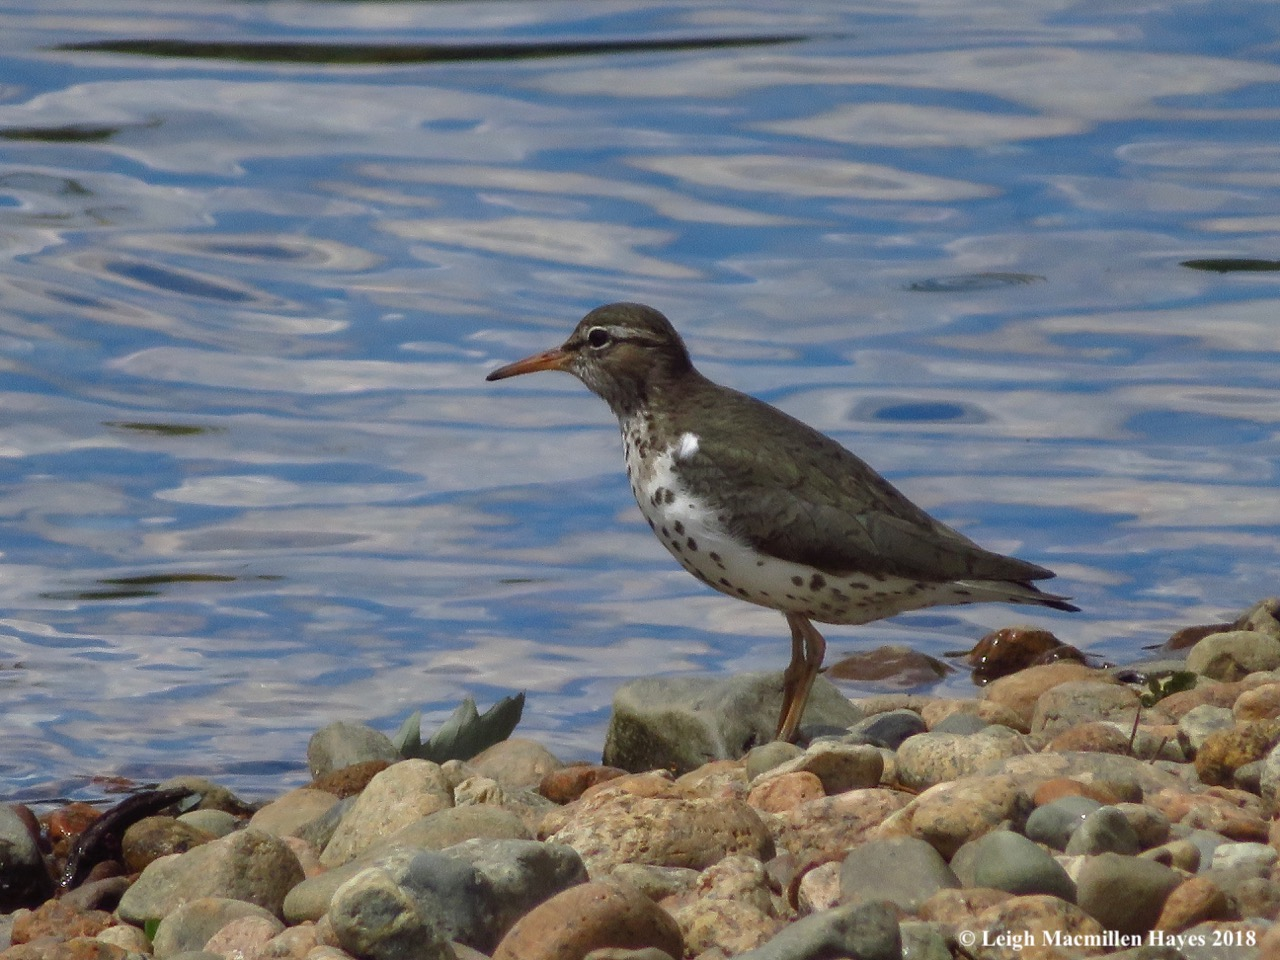 d7-spotted sandpiper